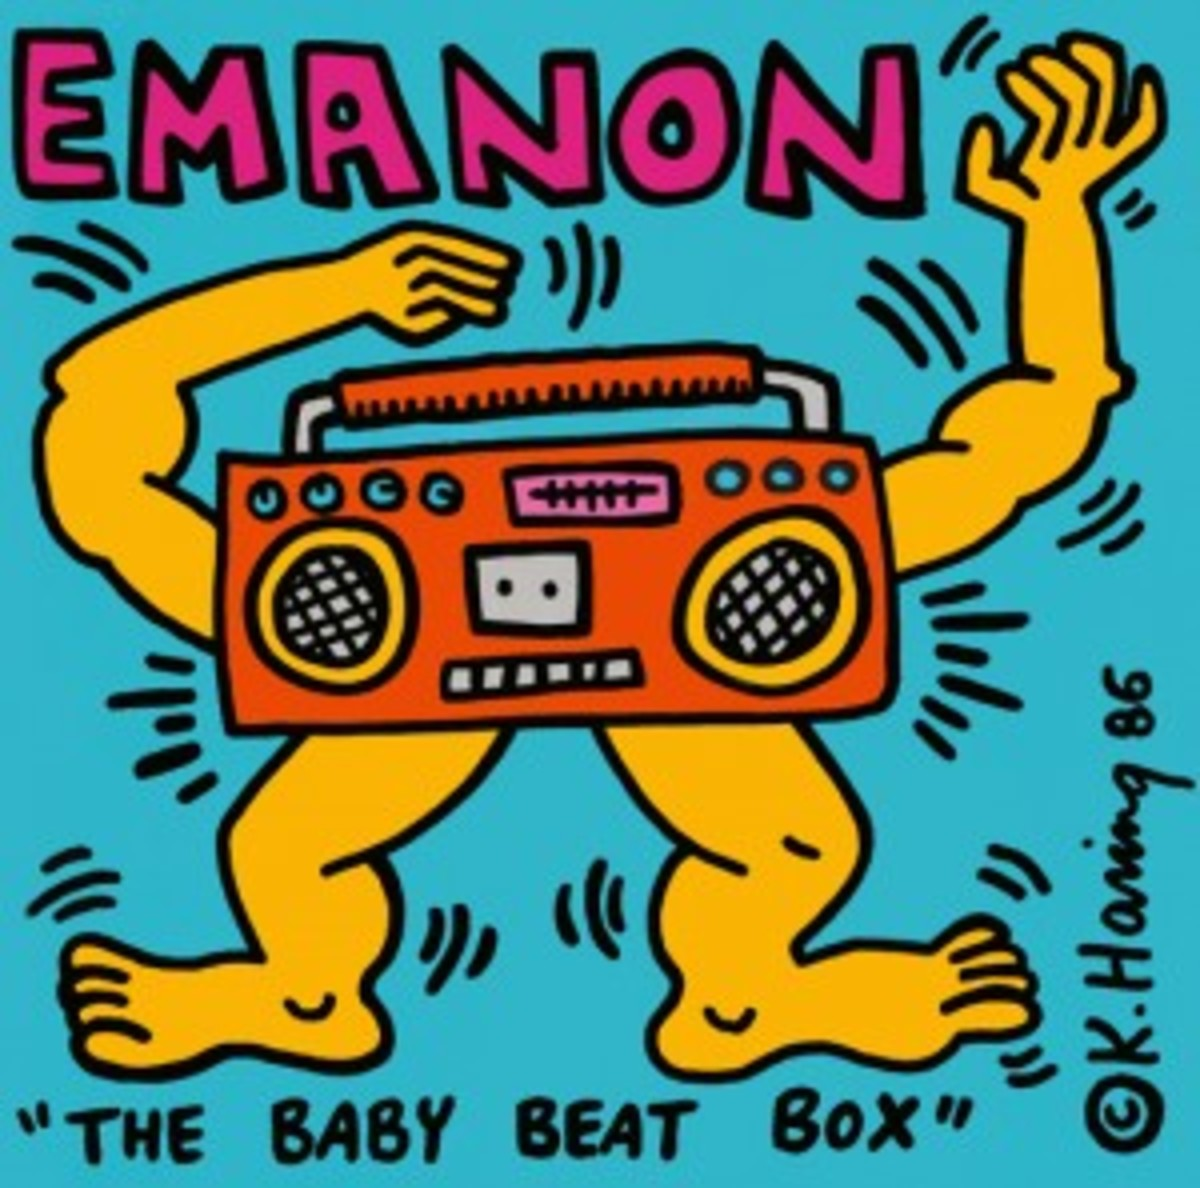 Emanon The Baby Beat Box picture sleeve by Keith Haring